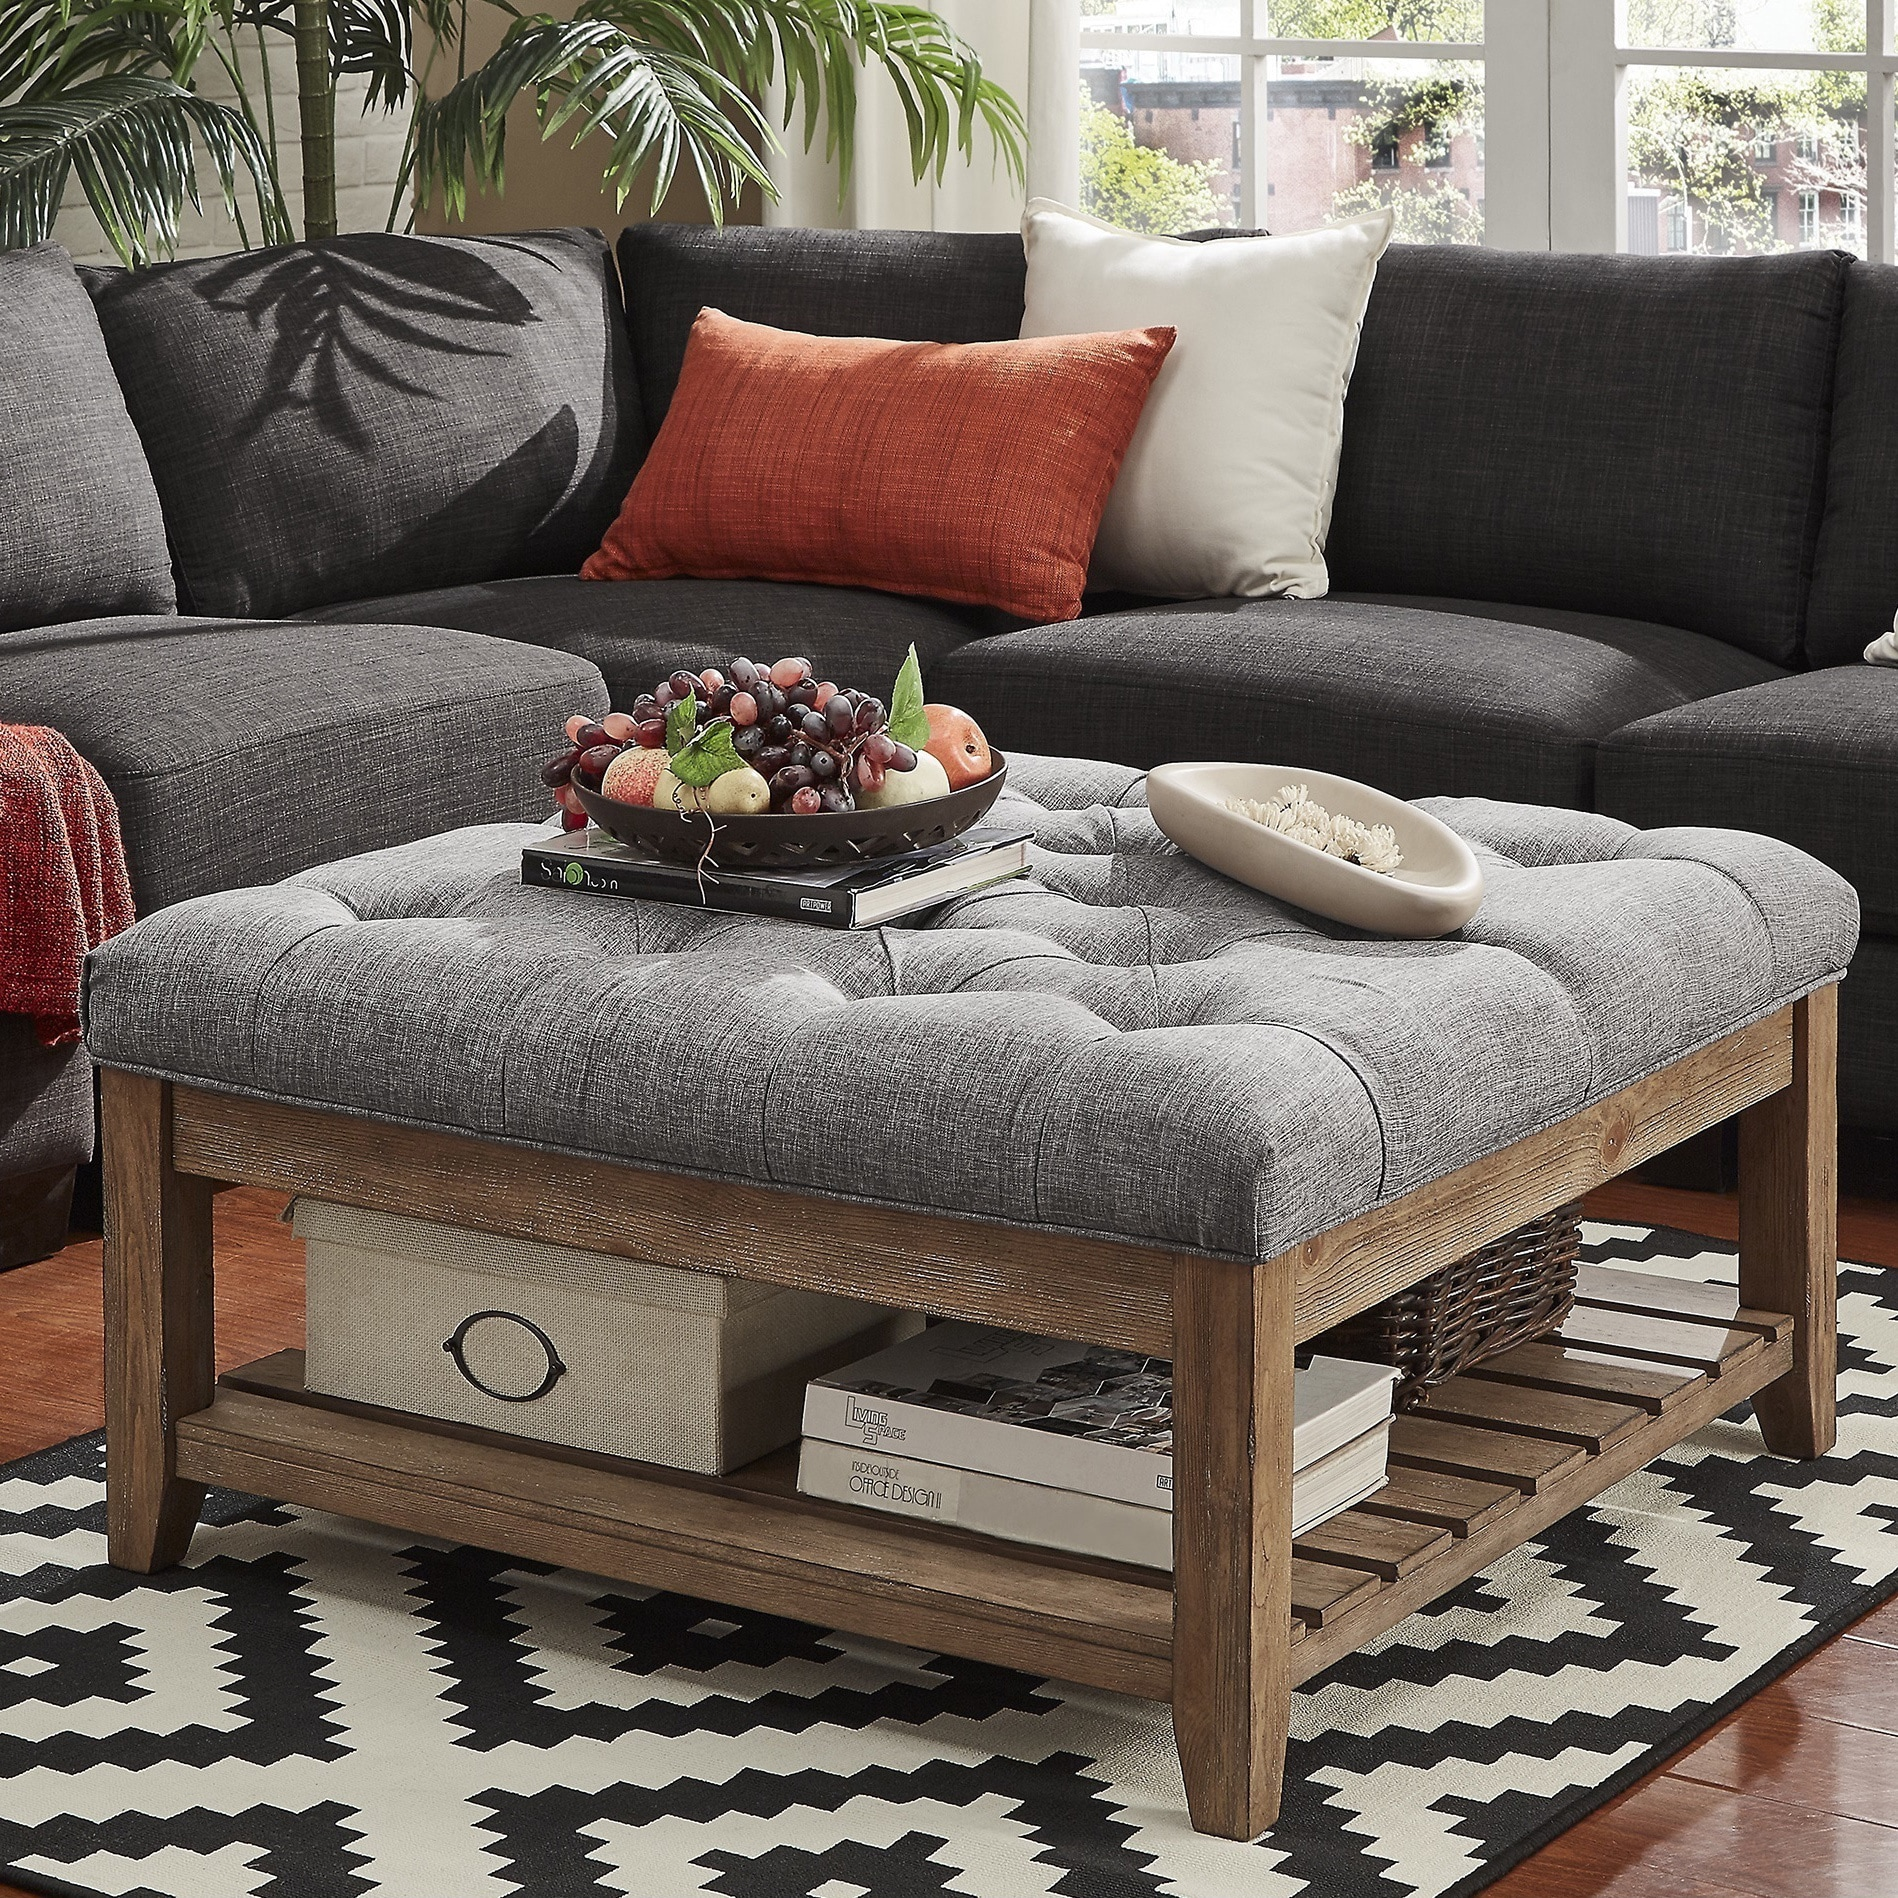 - Shop Lennon Pine Planked Storage Ottoman Coffee Table By INSPIRE Q